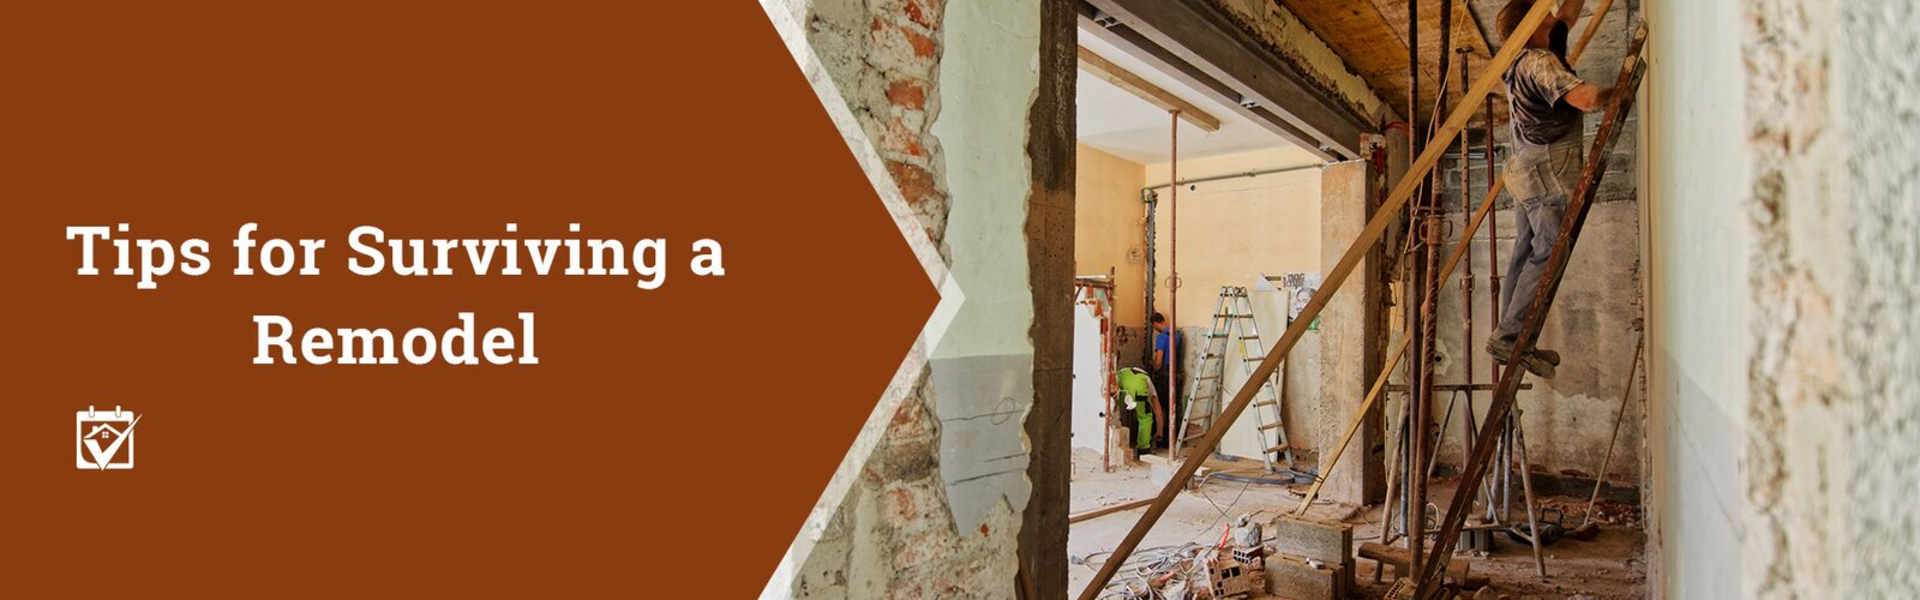 Tips for Surviving a Remodel